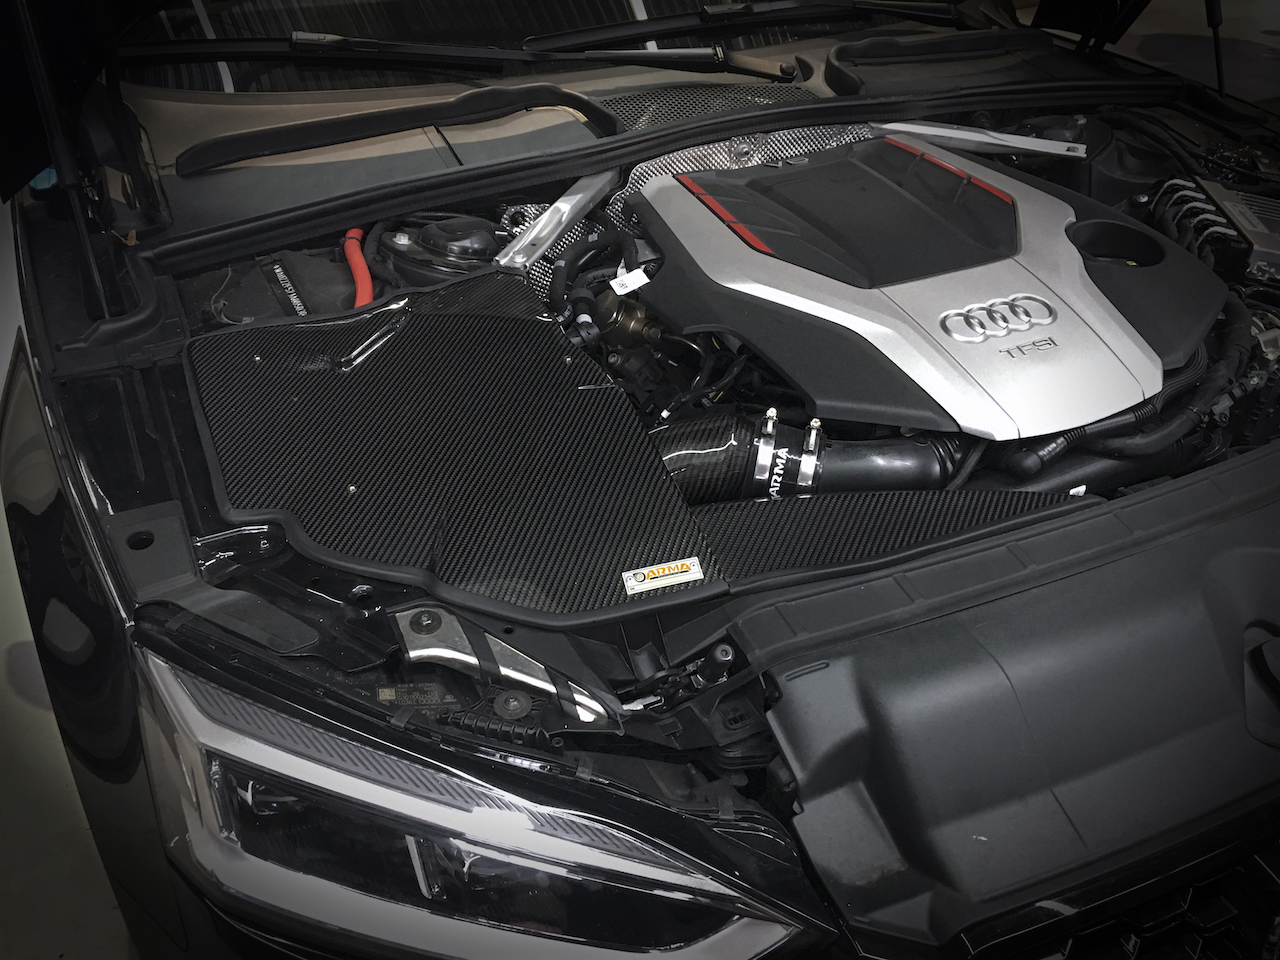 Lexus Dealers In Ma >> Audi S5 B9 Cold Carbon Intake - ARMA Speed